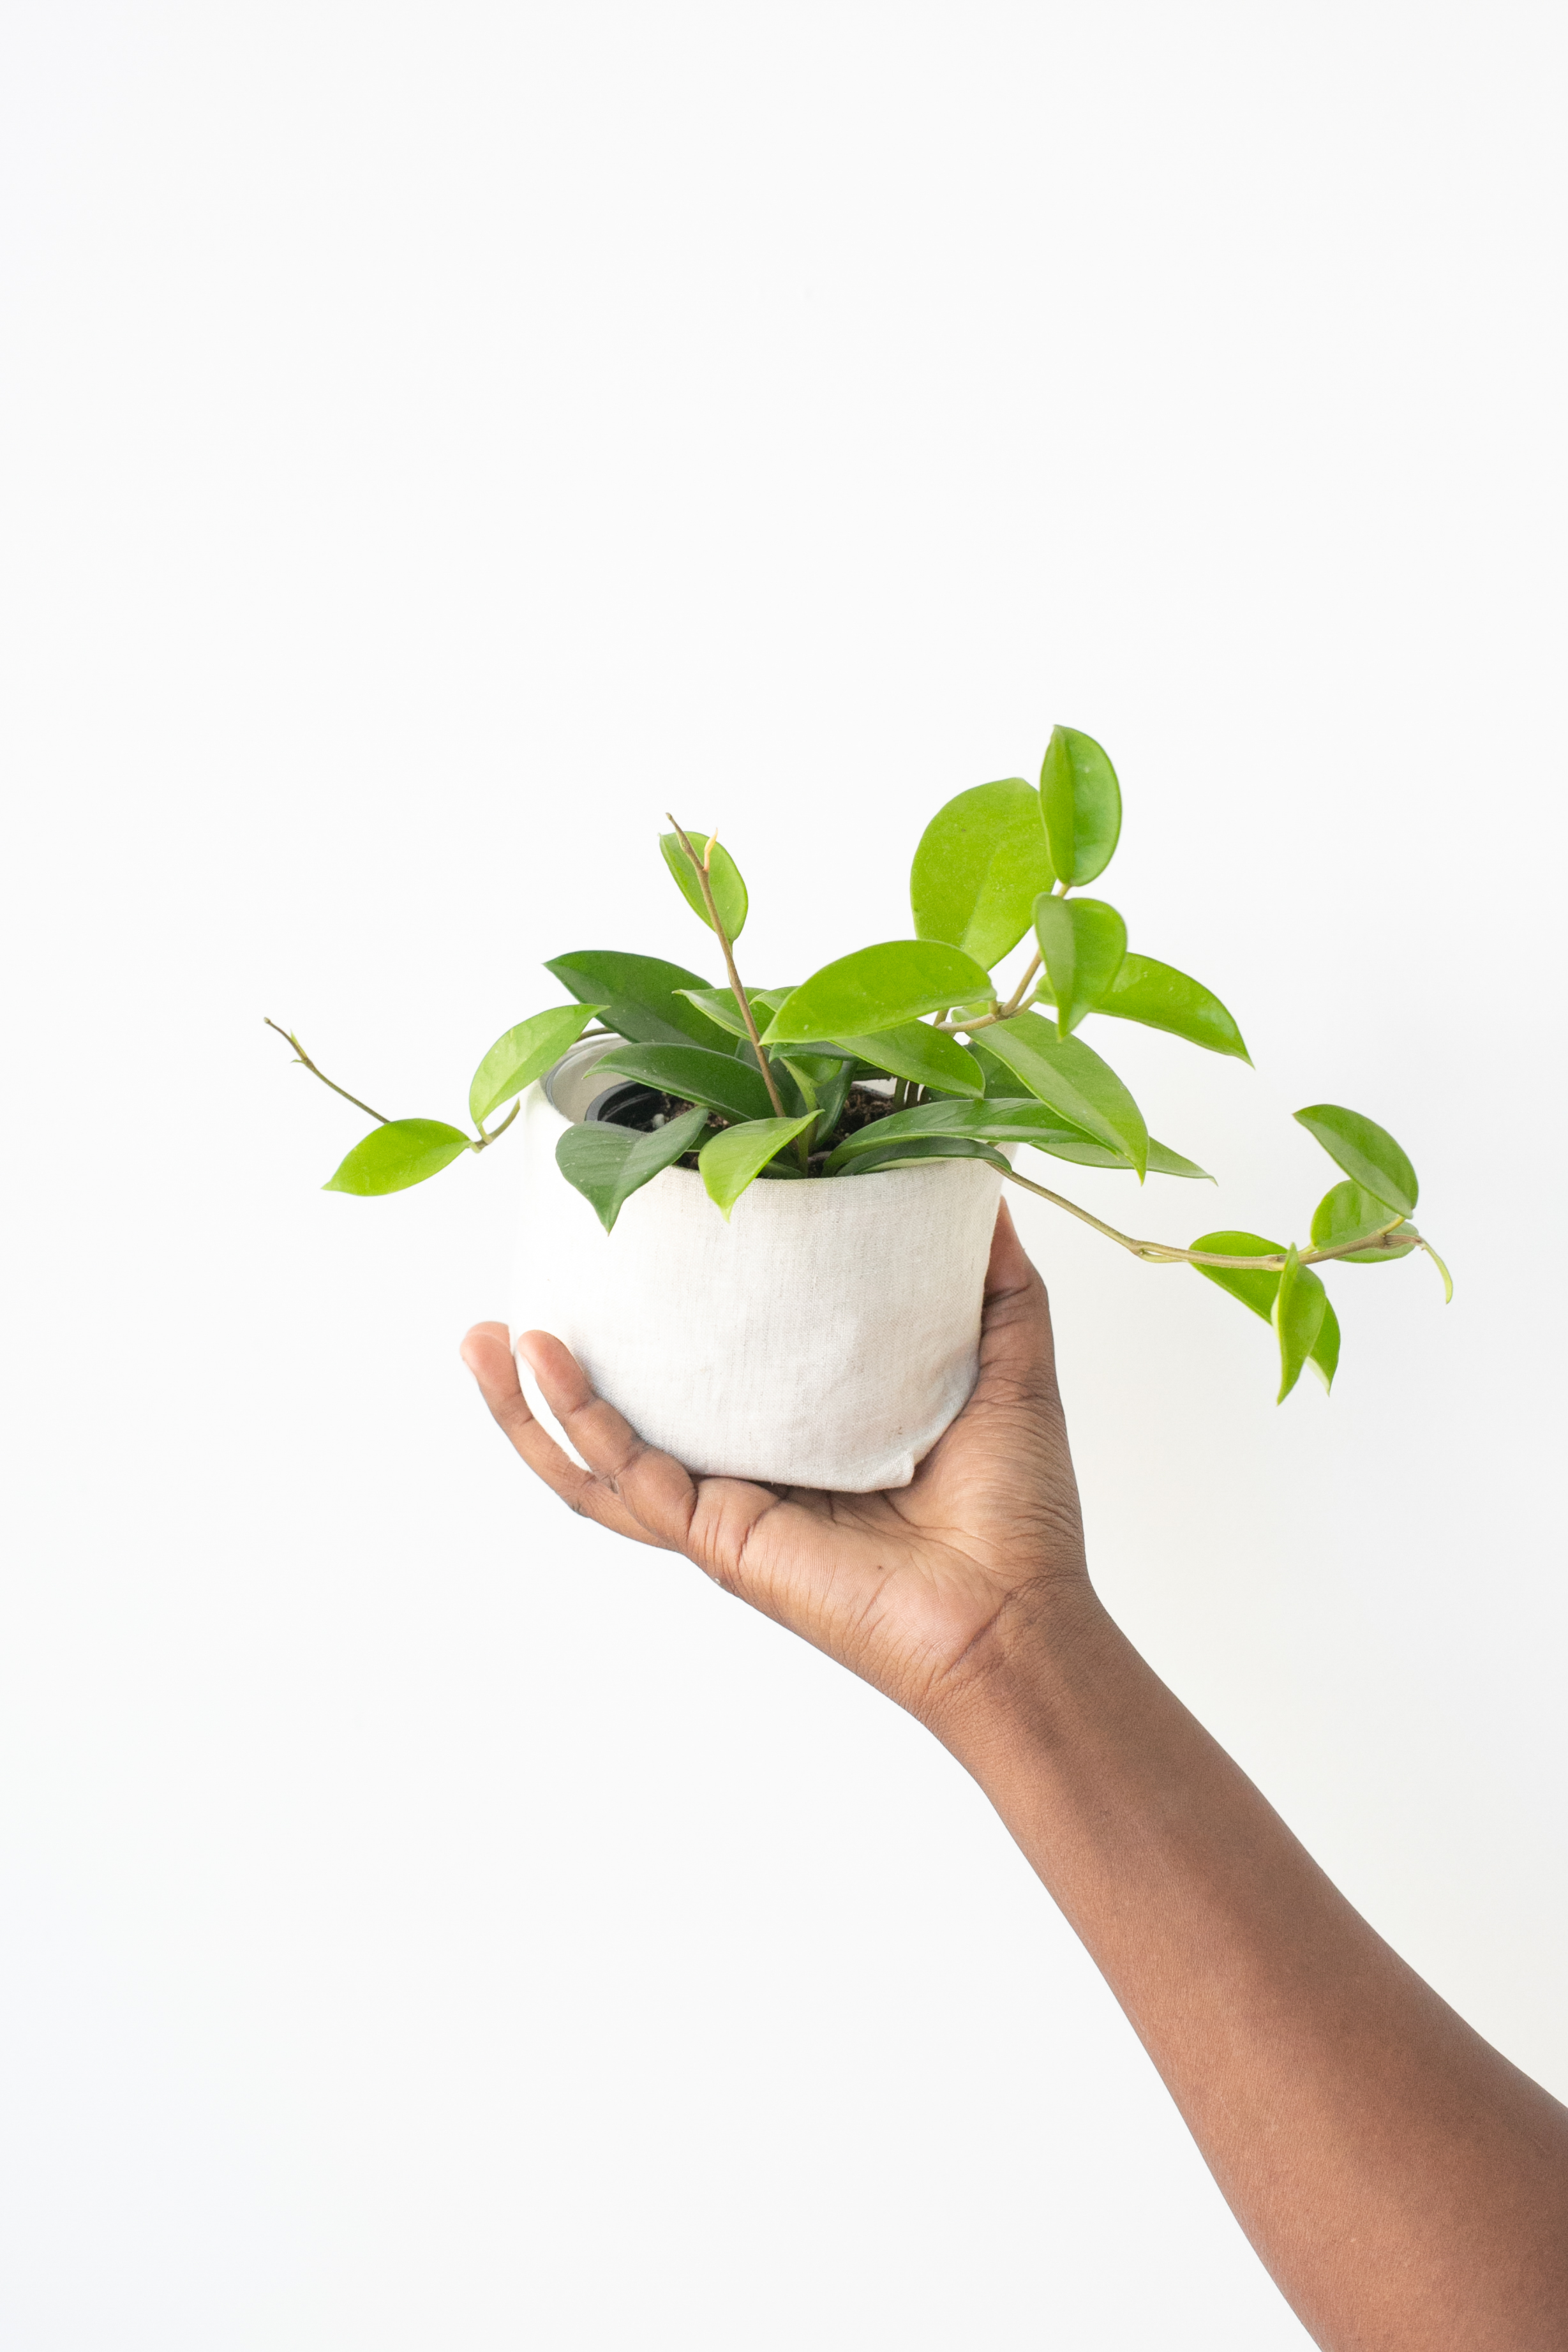 Hoyas make great plants to give as gifts because they are budget-friendly and easy to care for.